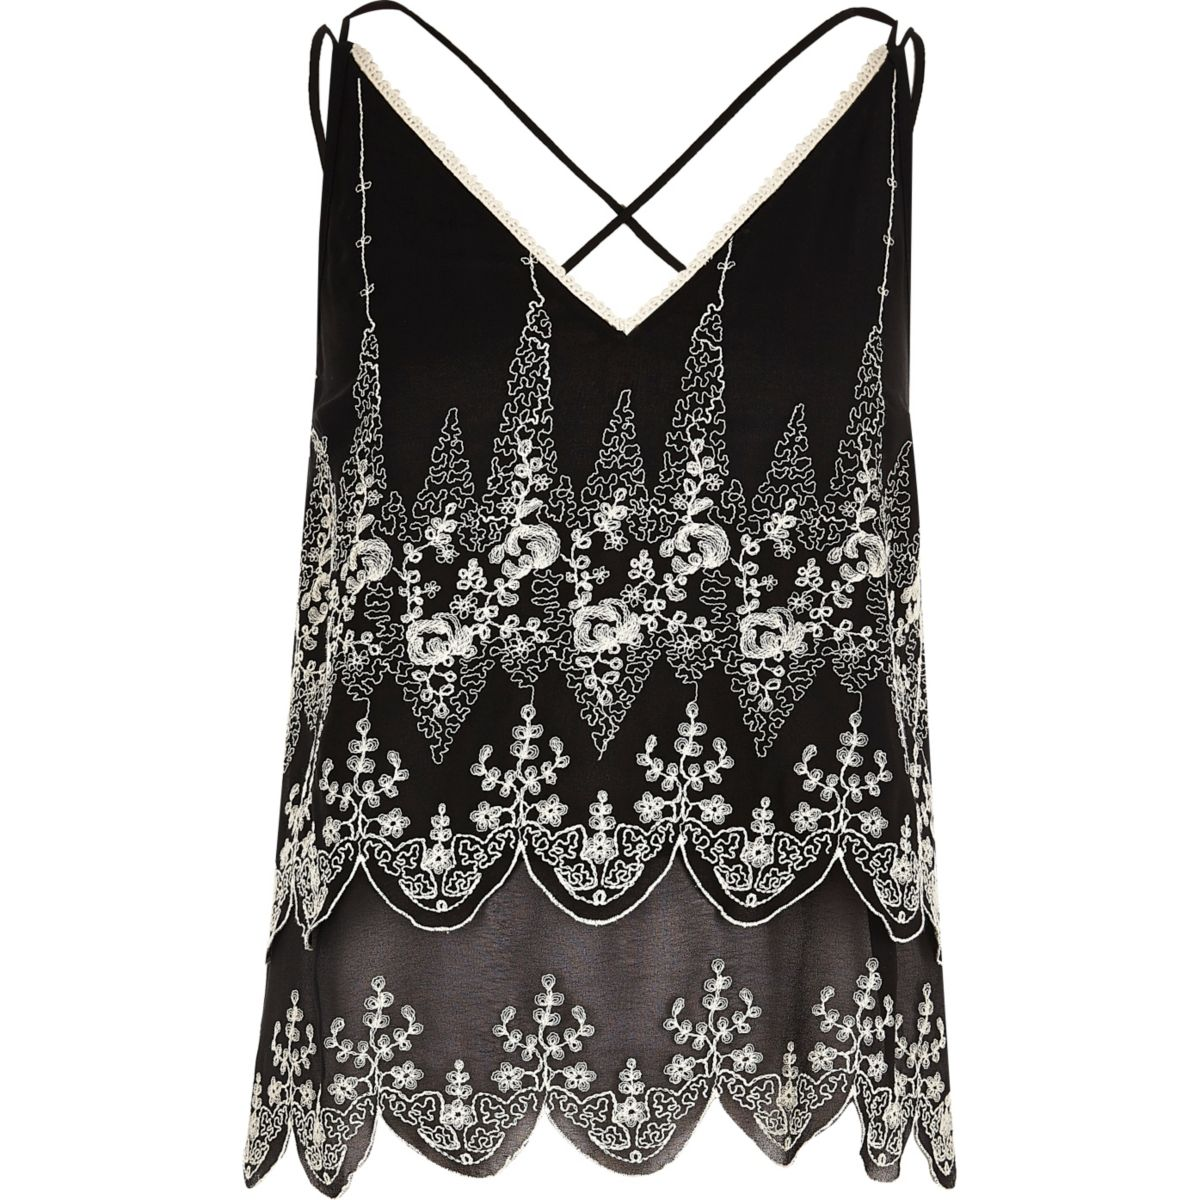 Black embroidered floral cami top